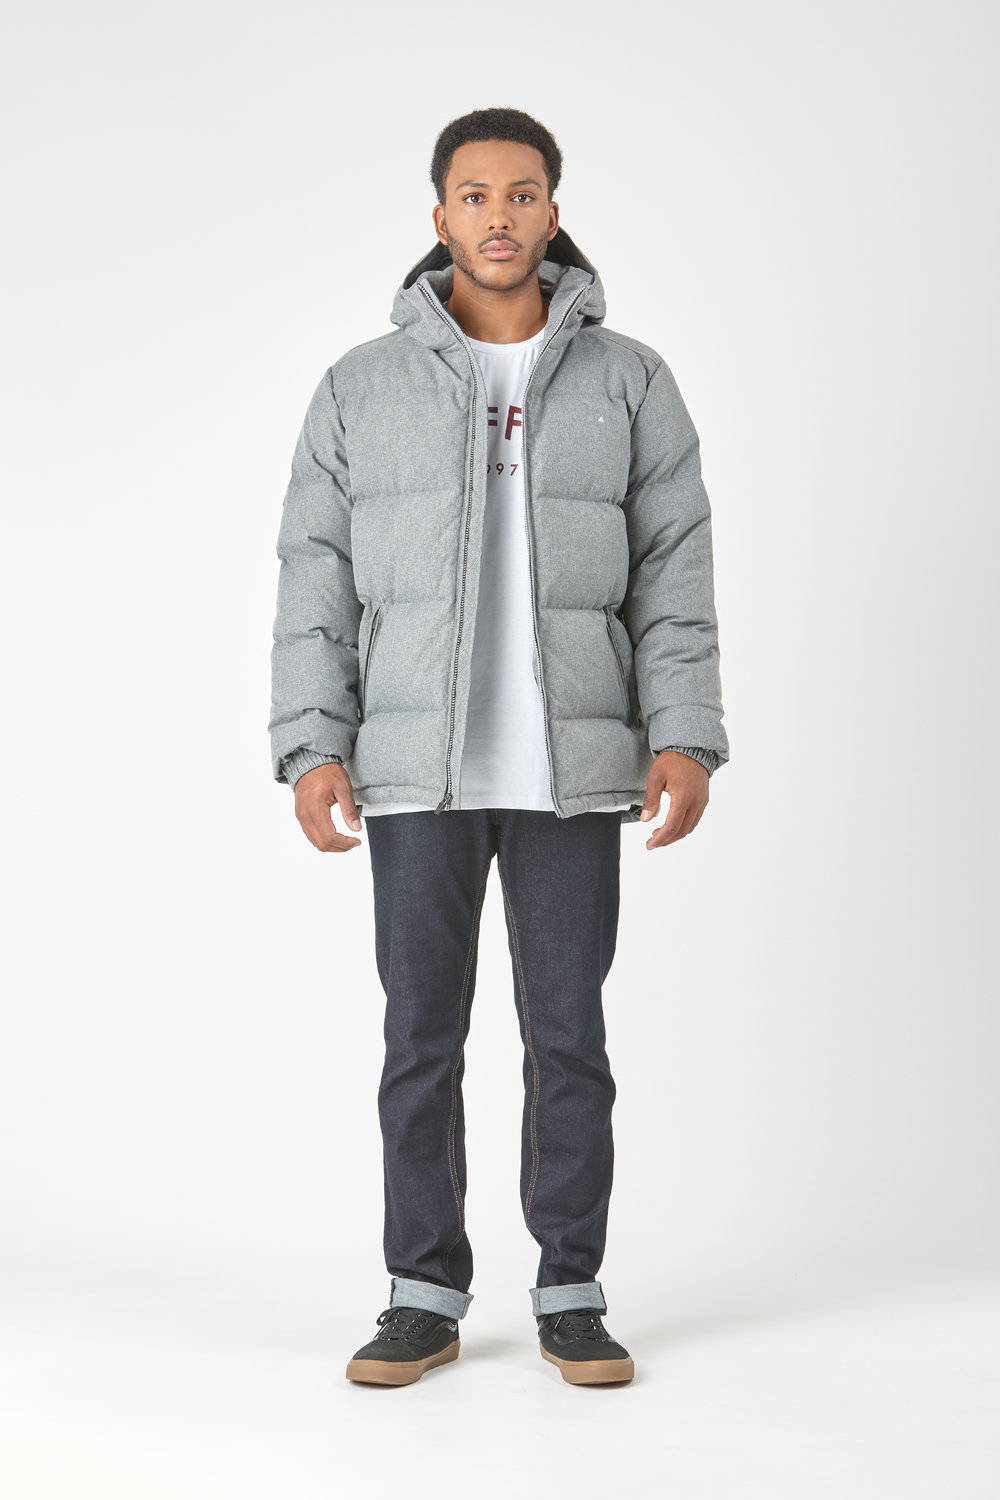 Huffer_OW-17_M-Classic-Down-Jacket_Grey-01.jpg